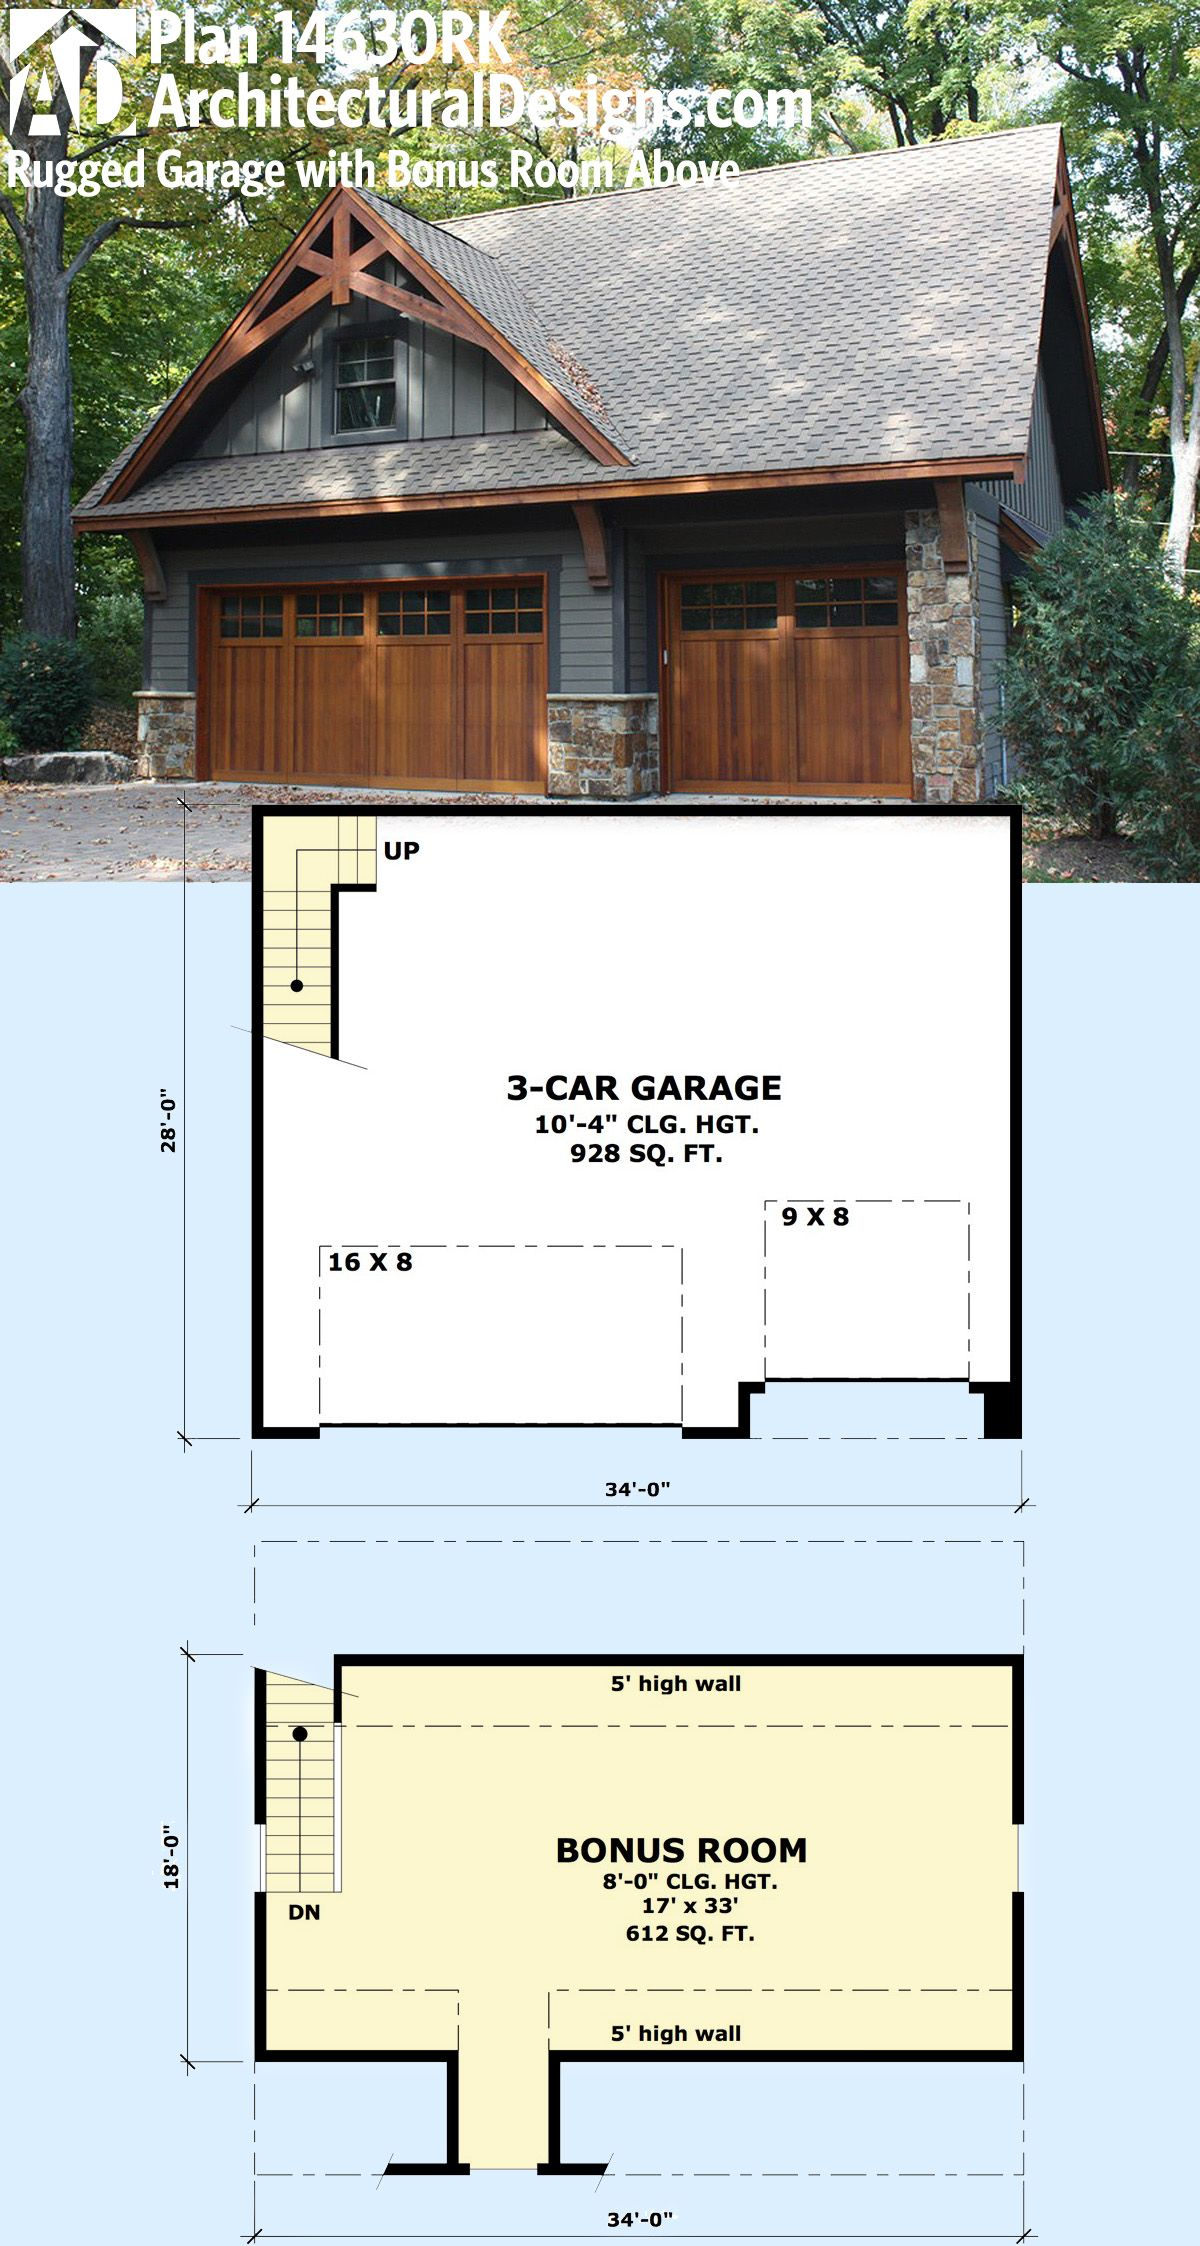 Plan 14630rk Rugged Garage With Bonus Room Above Garage